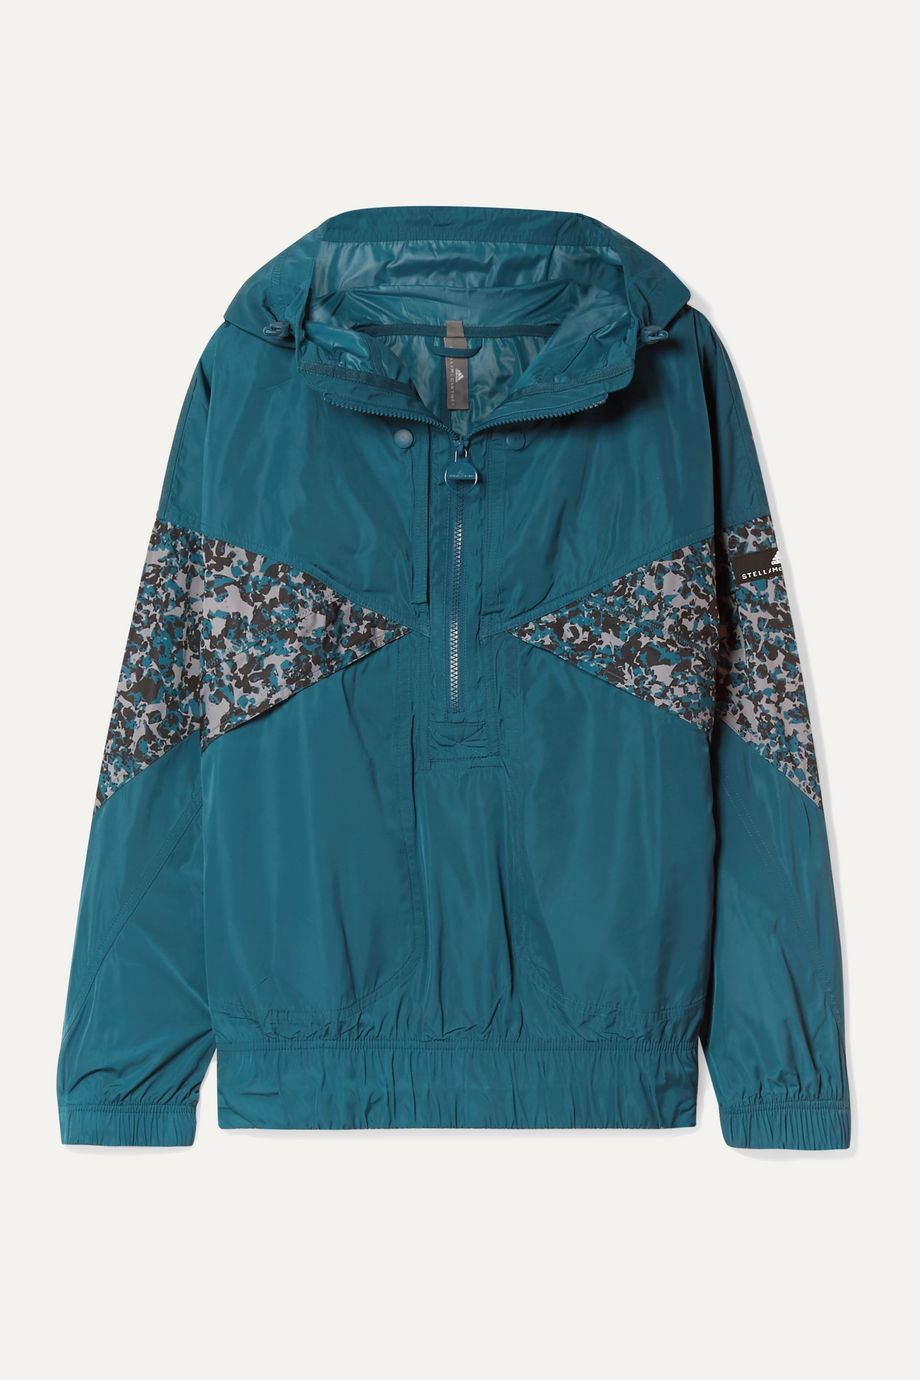 adidas by Stella McCartney Hooded printed shell jacket